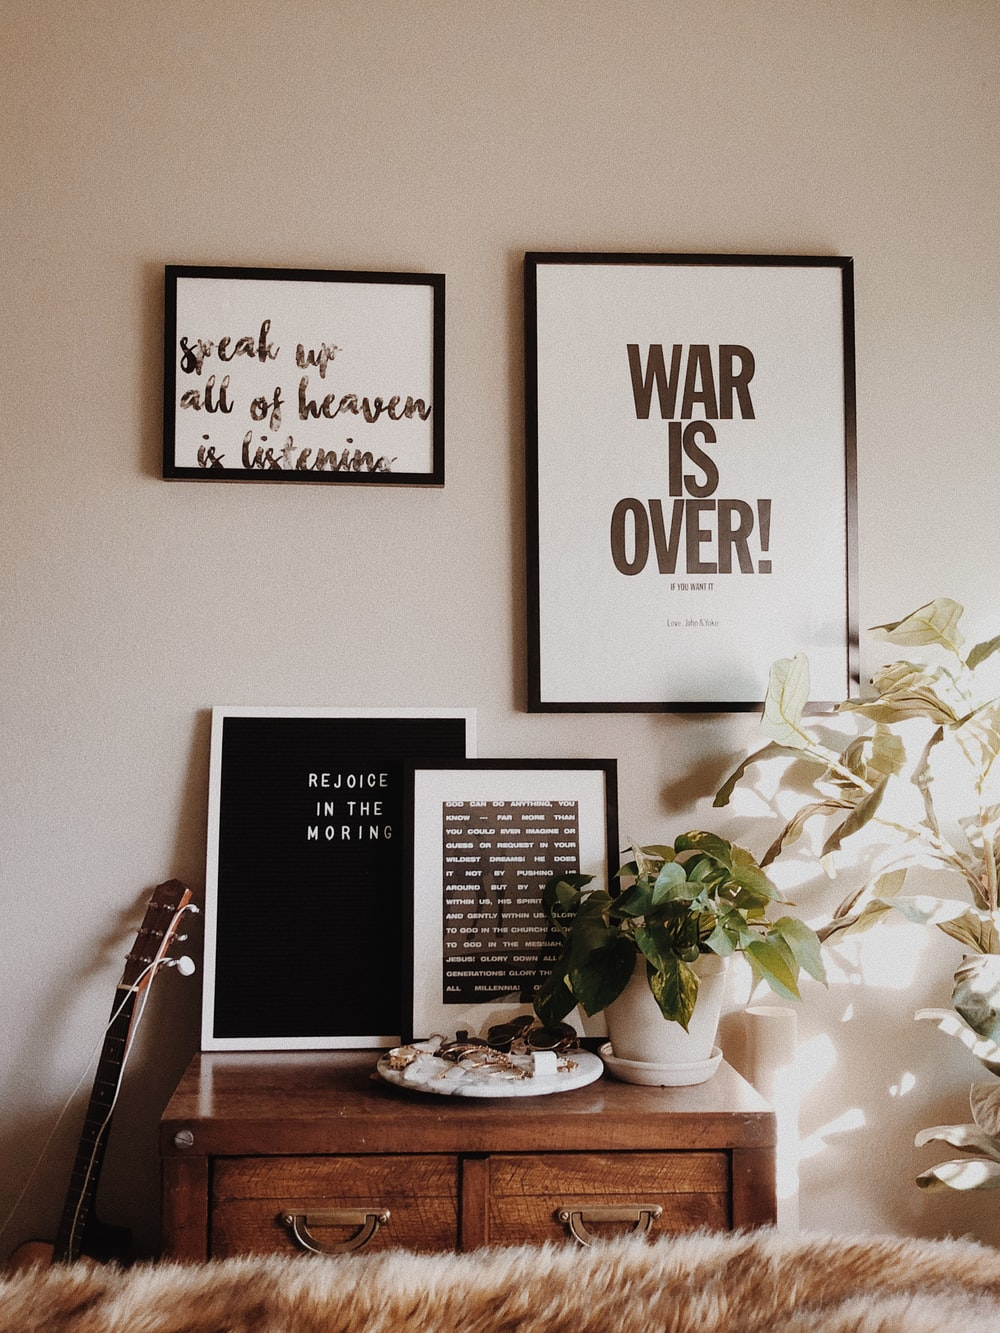 War is Over sign on wall inside room